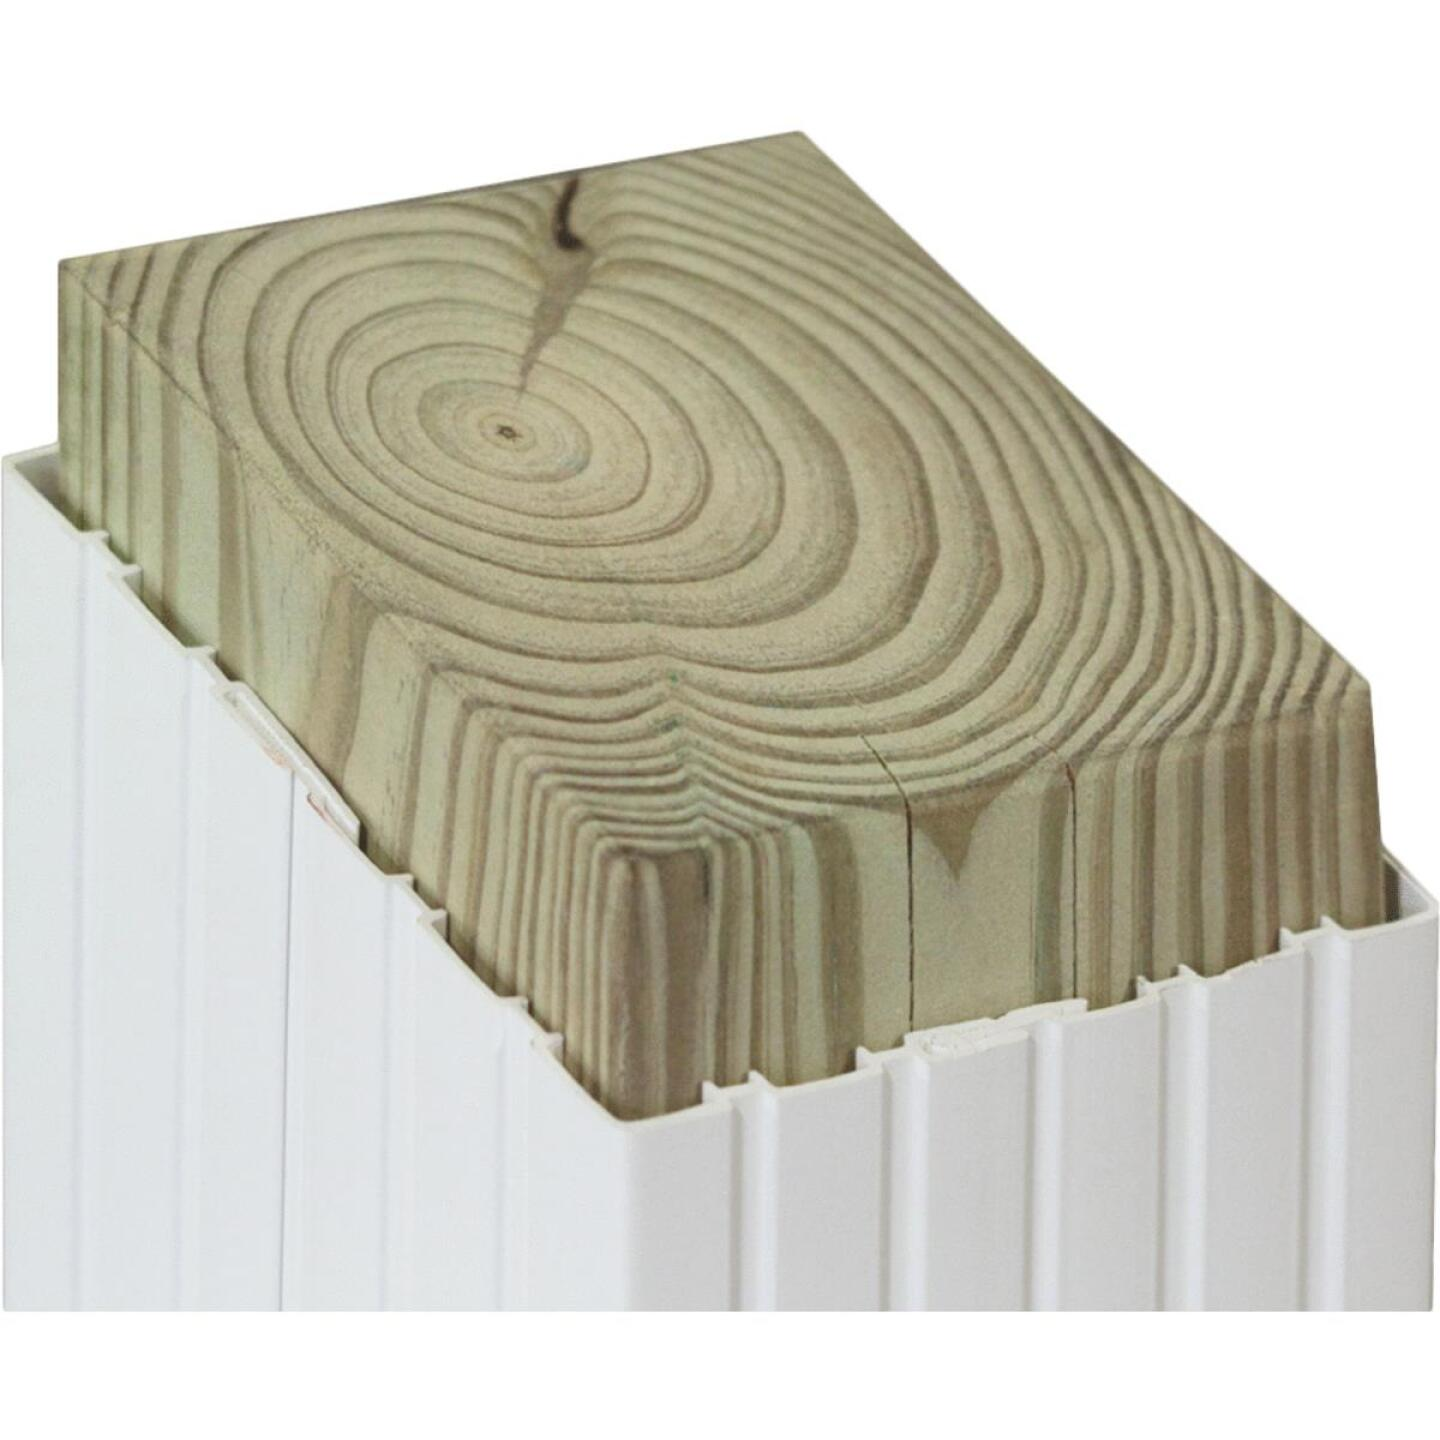 Beechdale 6 In. W x 6 In. H x 102 In. L White PVC Fluted Post Wrap Image 2